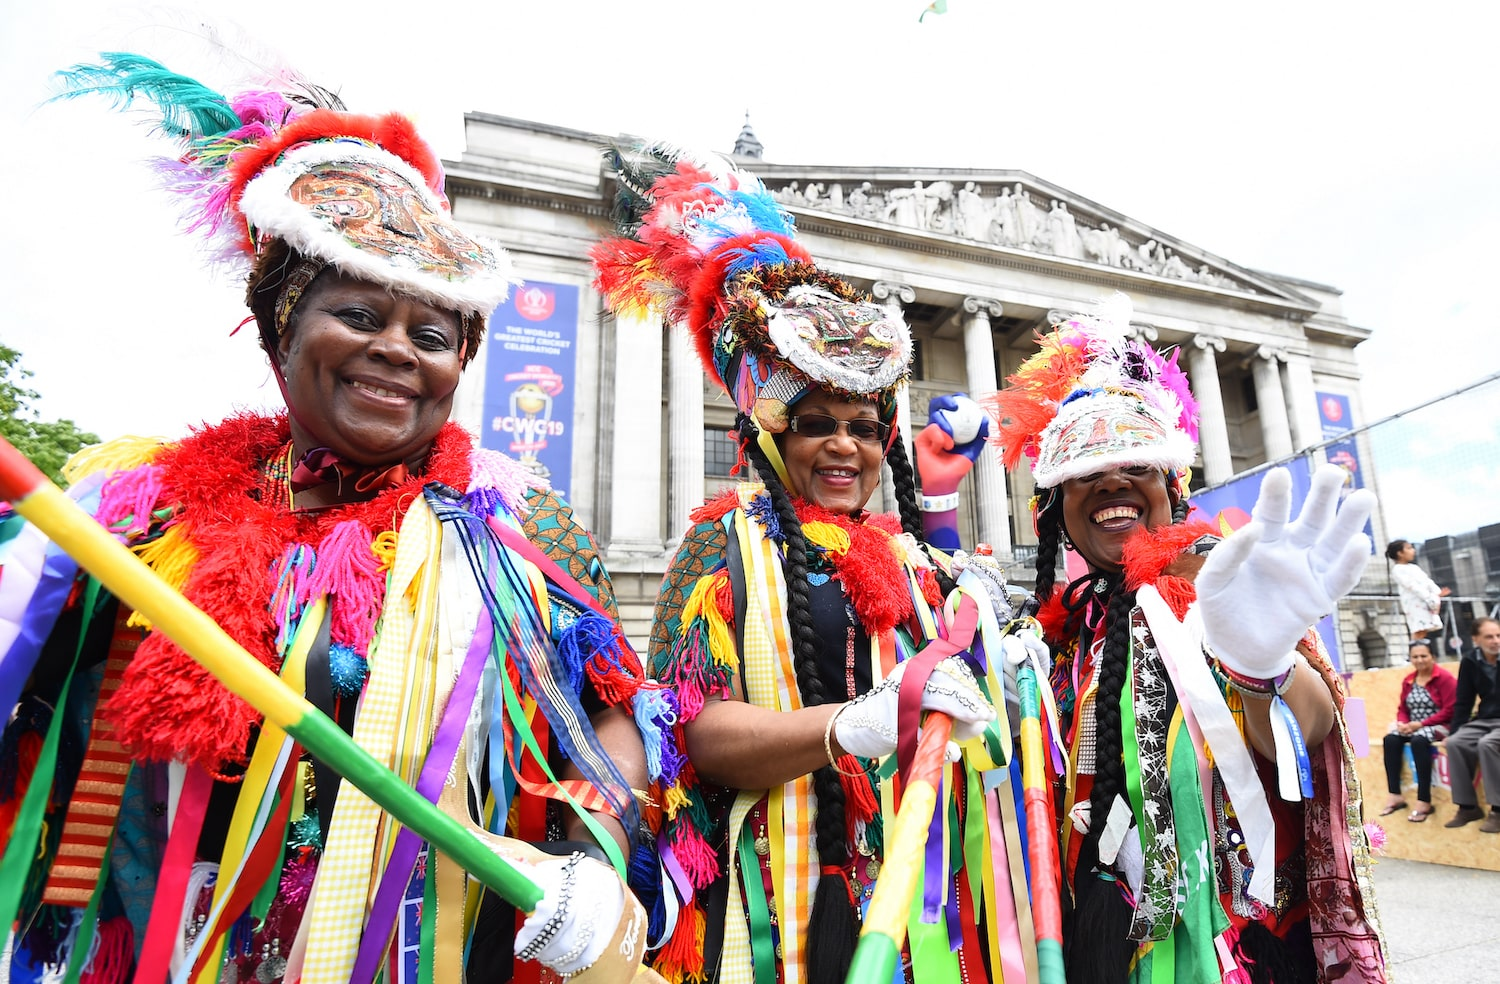 Women in colourful costumes